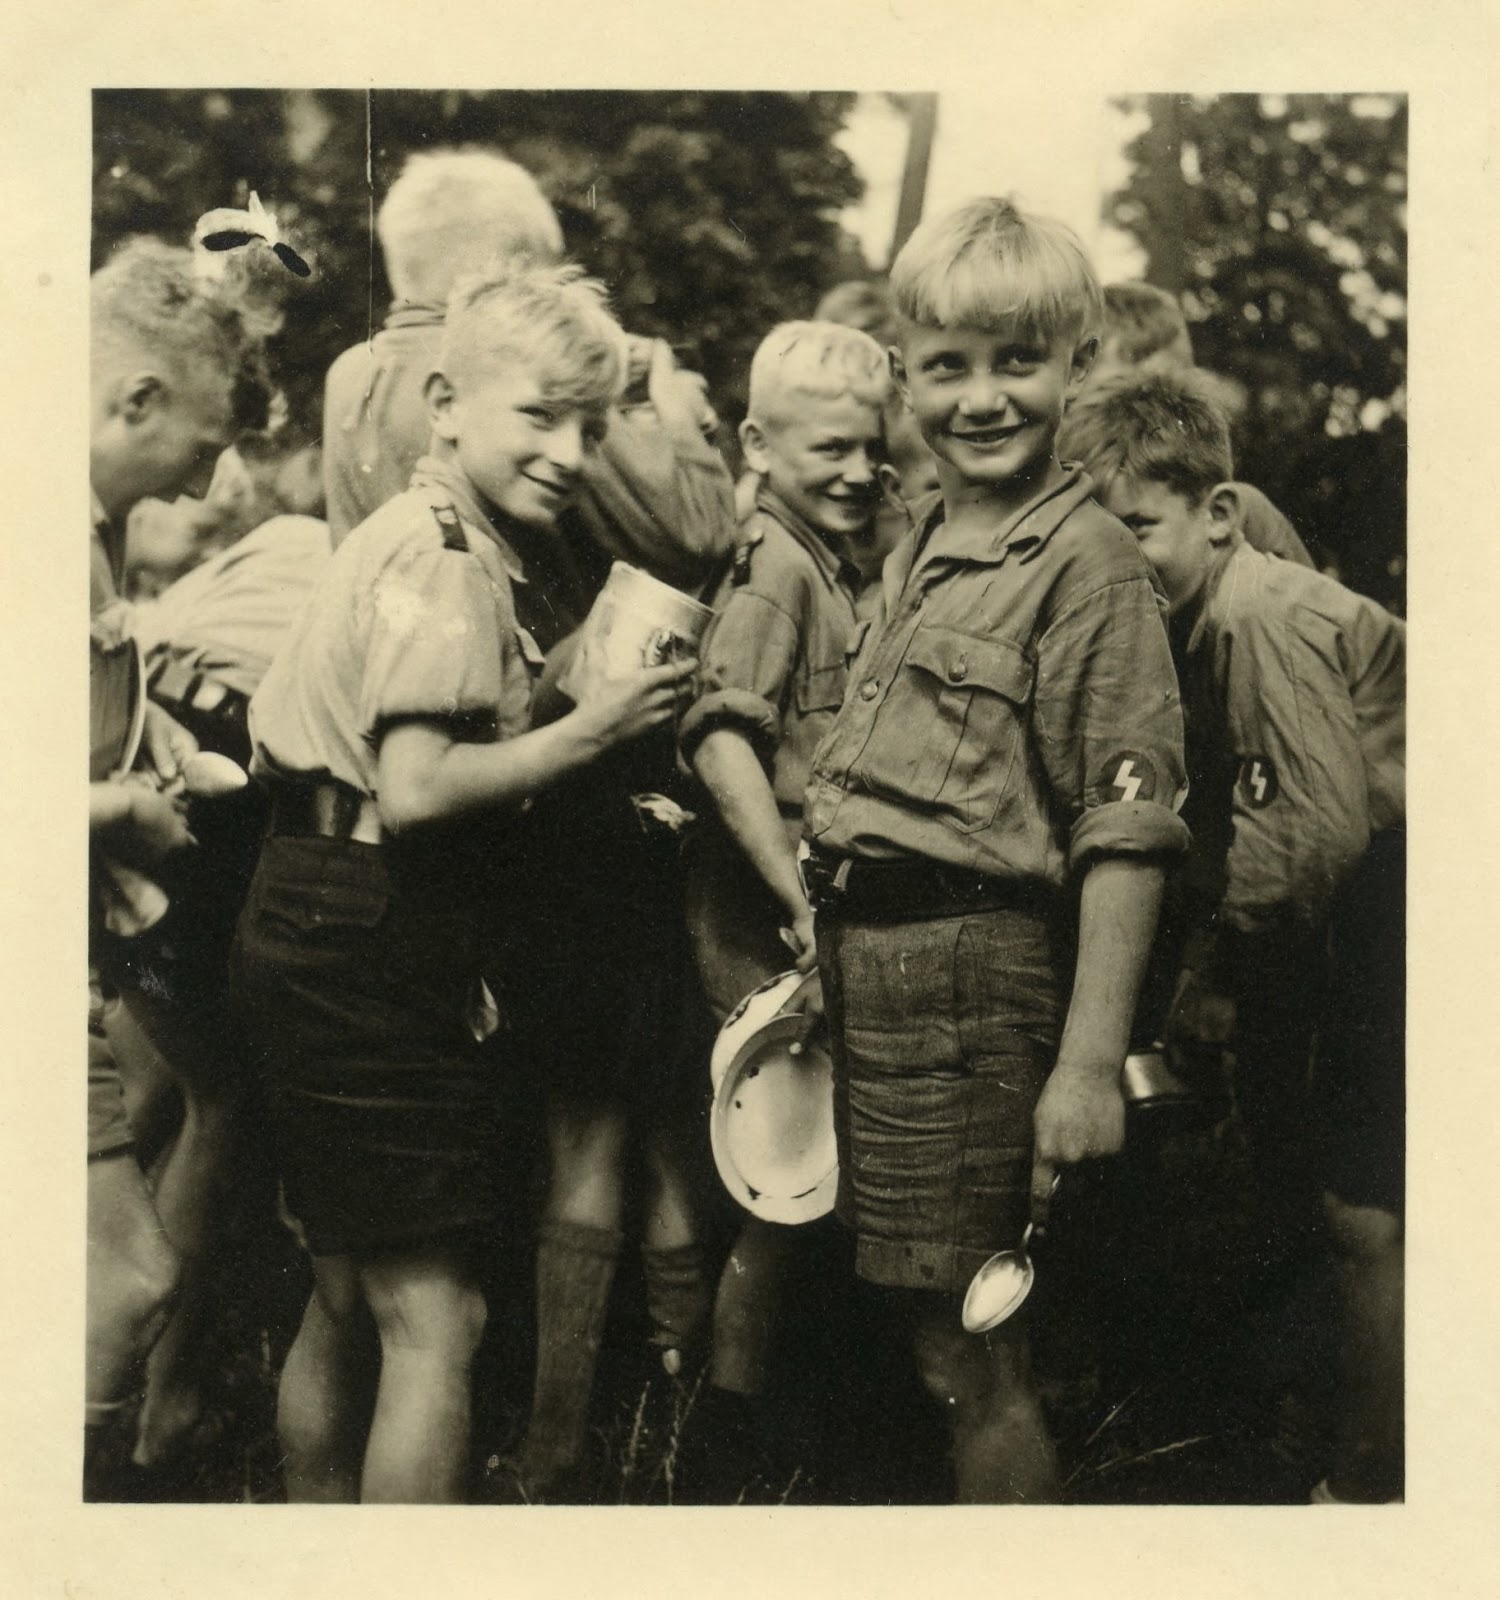 Hitler Quotes On Youth: JANE PUBLIC THINKING: NORMAL: How The Nazis Normalized The